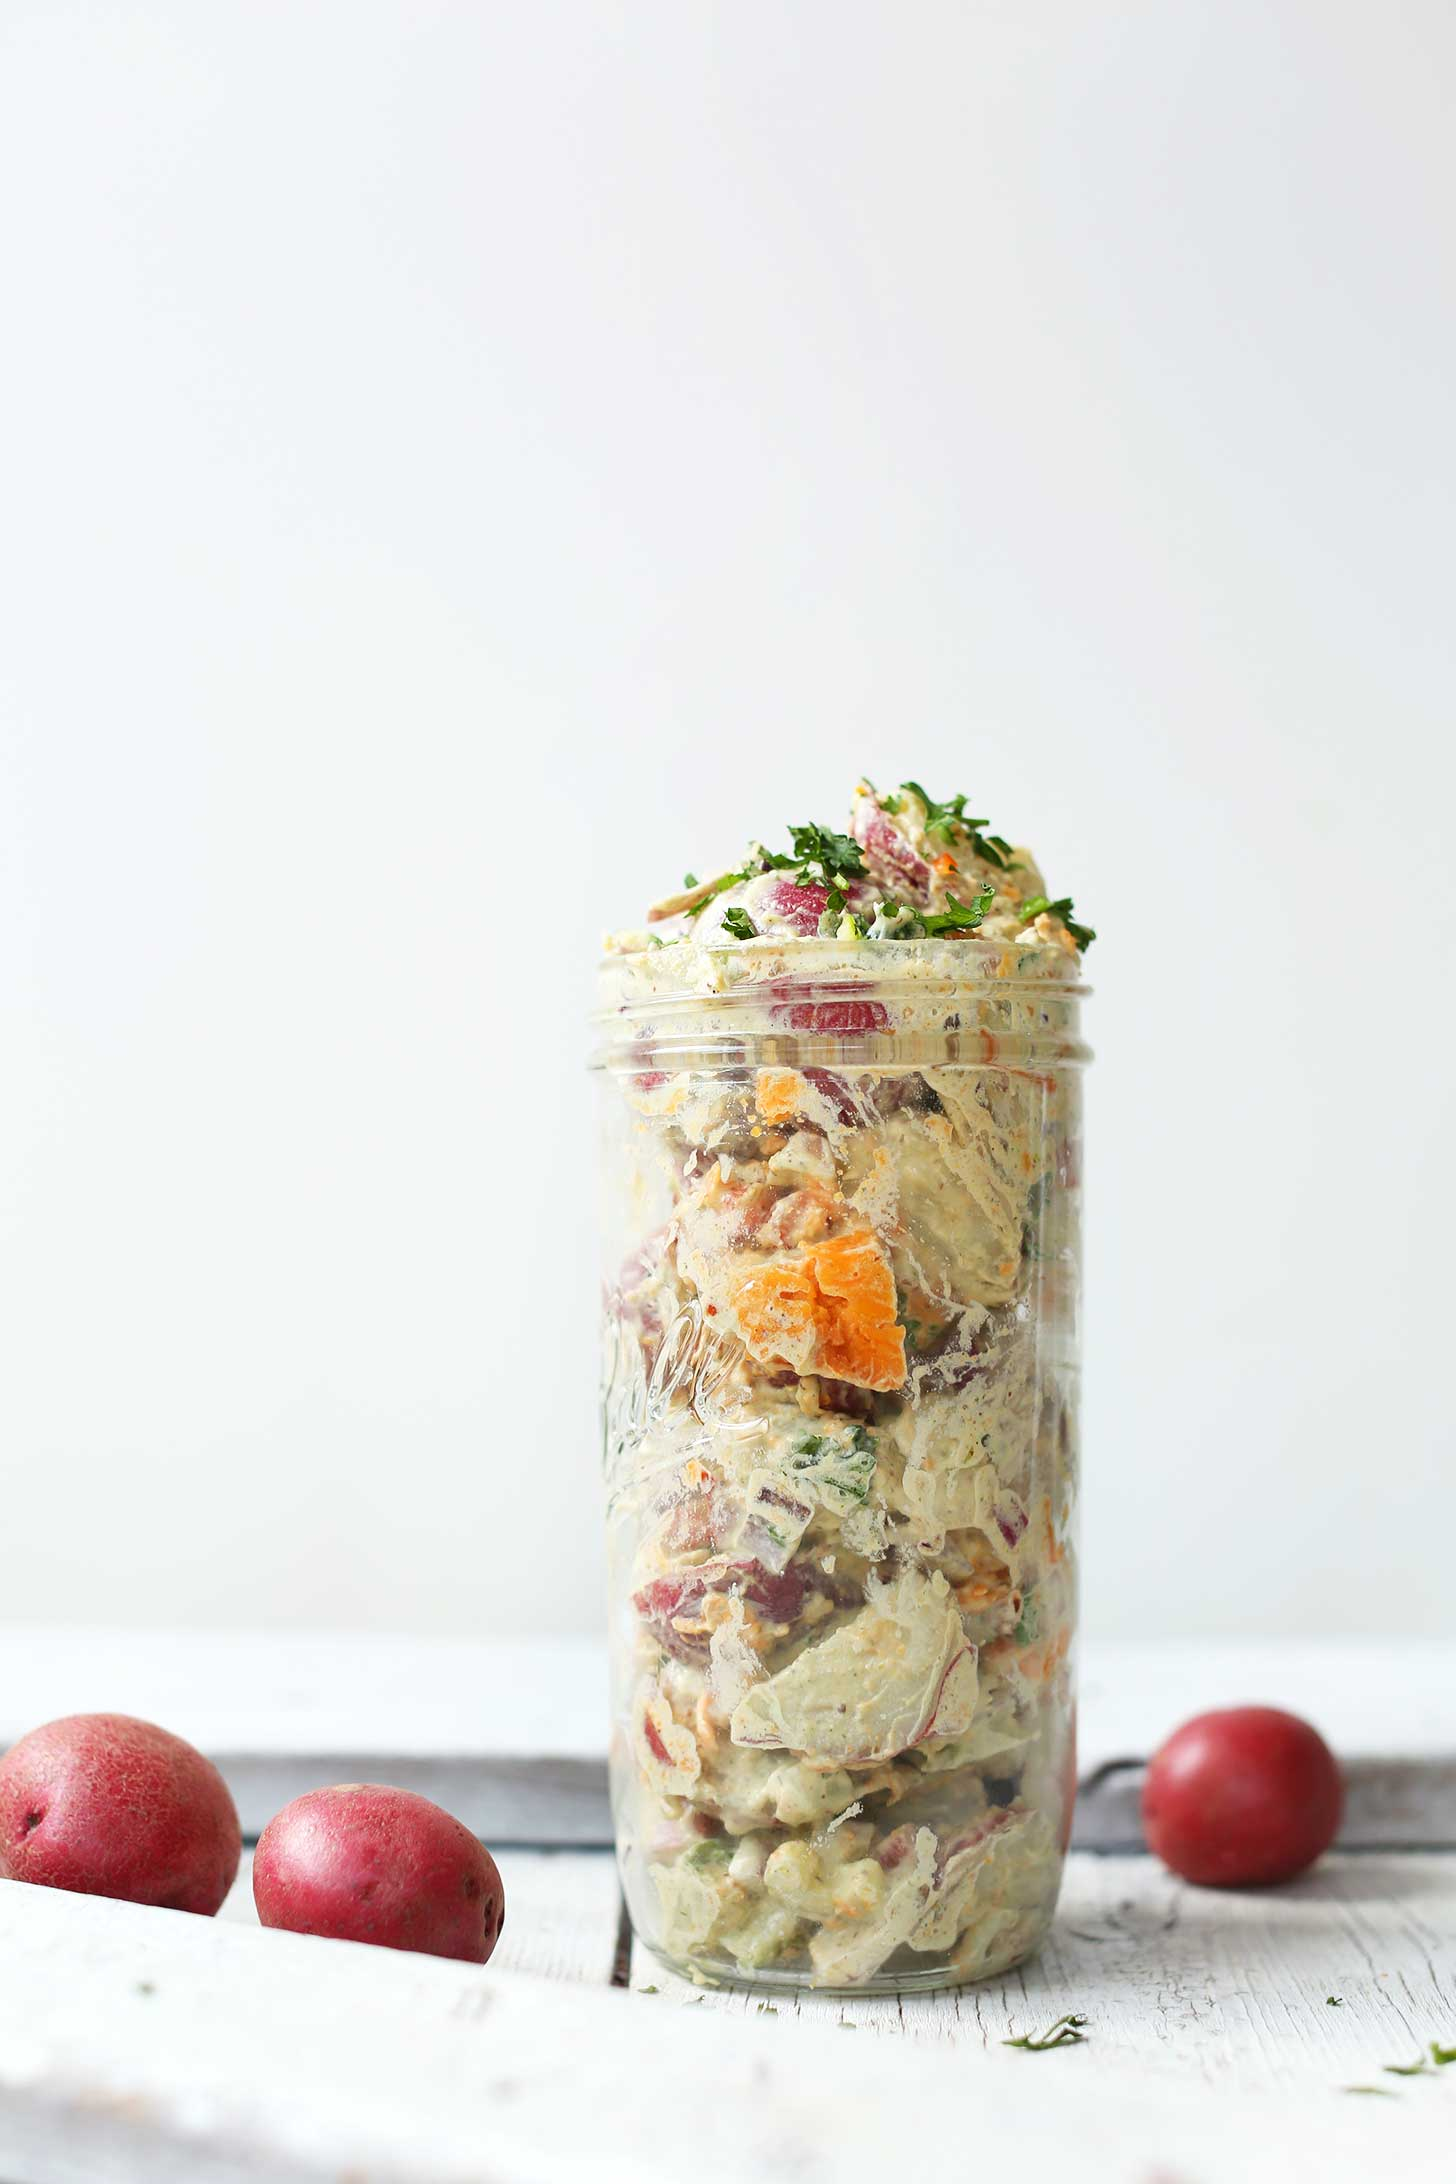 A jar filled with our hearty simple vegan potato salad recipe